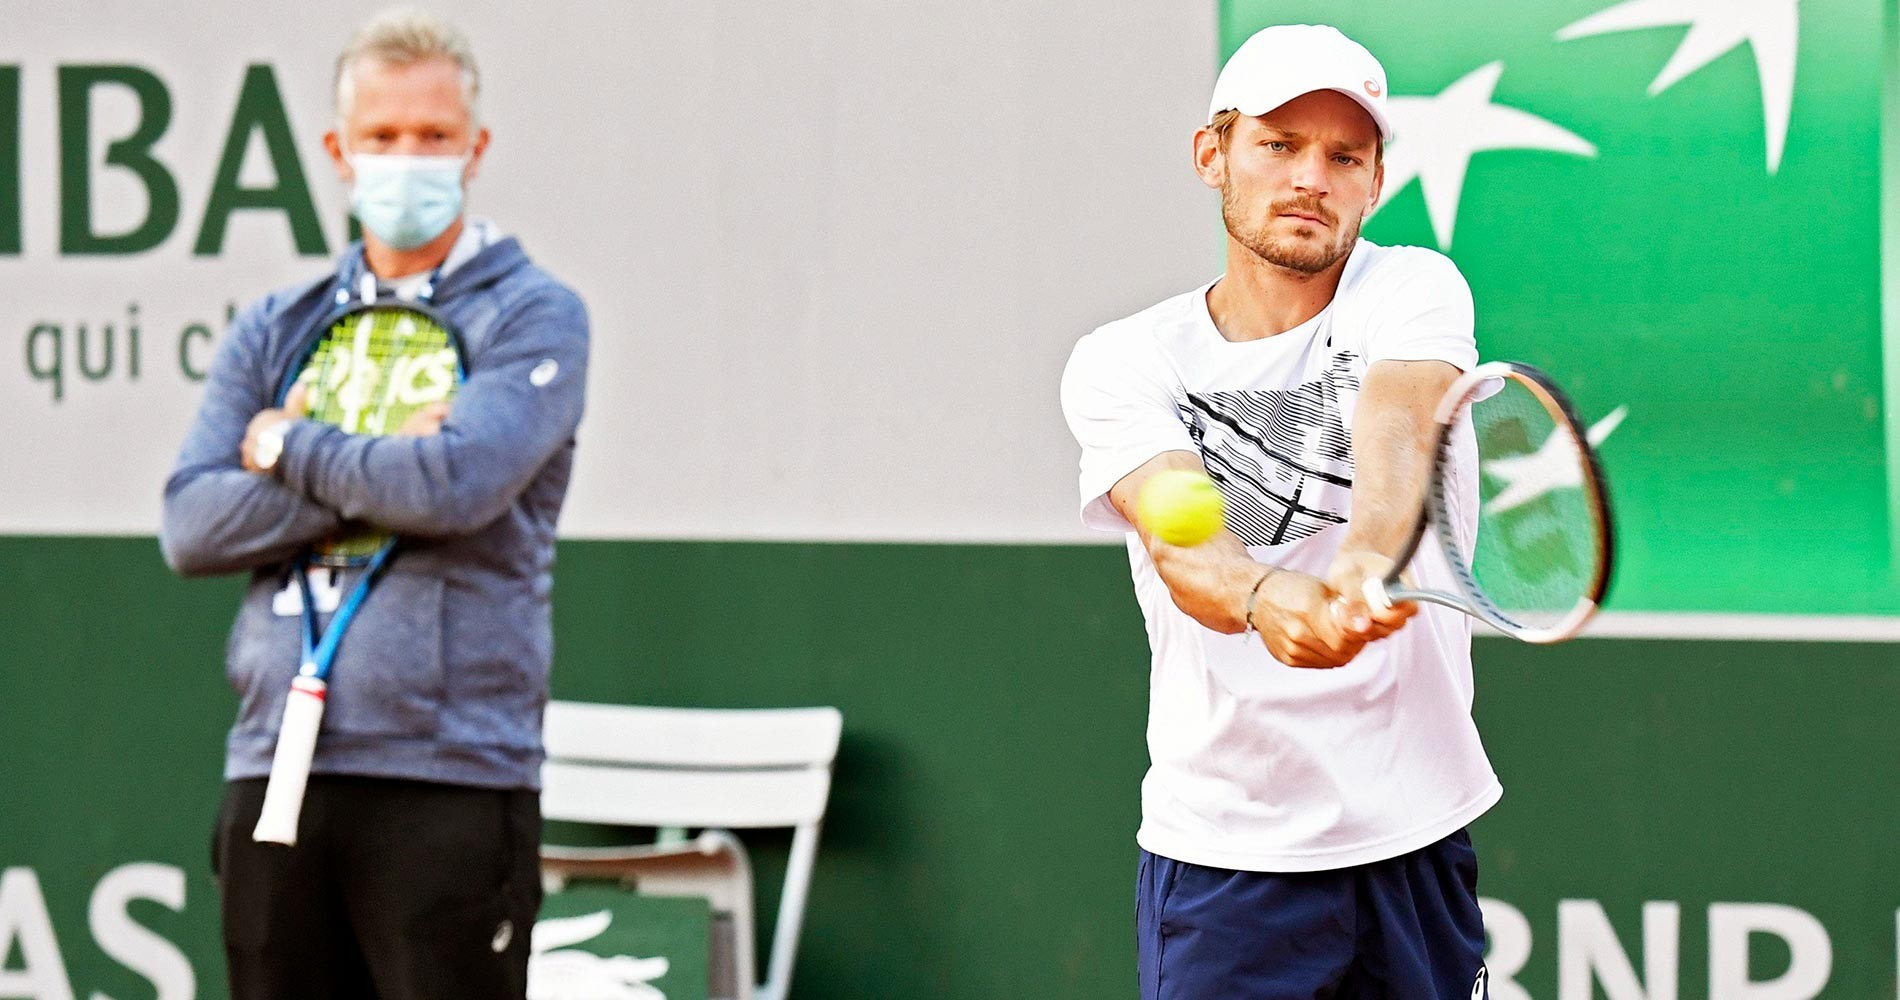 David Goffin with Thomas Johansson looking on